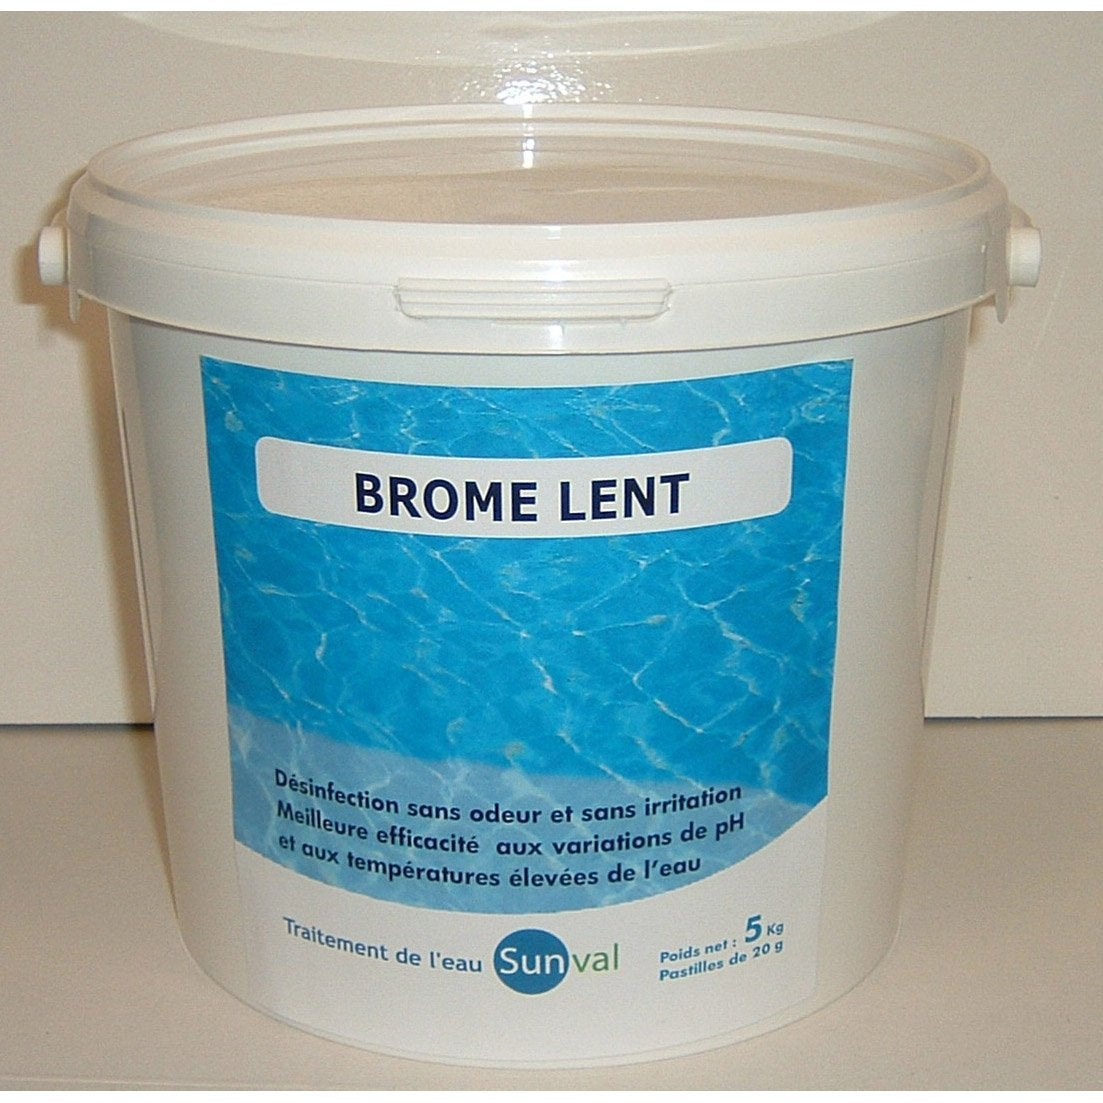 Brome lent piscine pastille 5 kg leroy merlin for Piscine brome